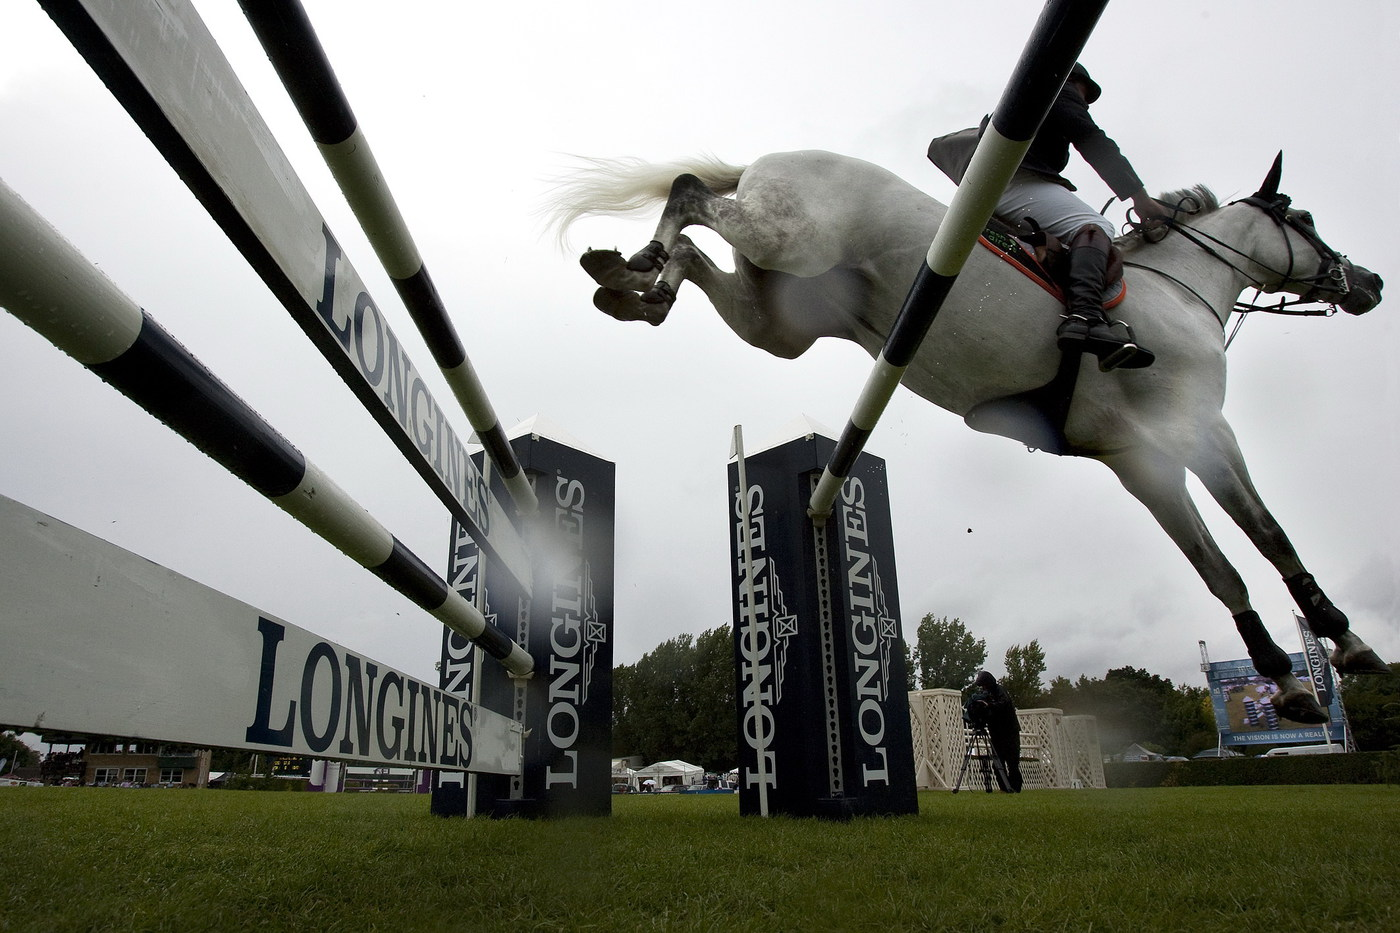 Longines Show Jumping Event: The Hickstead Royal International Horse Show 3